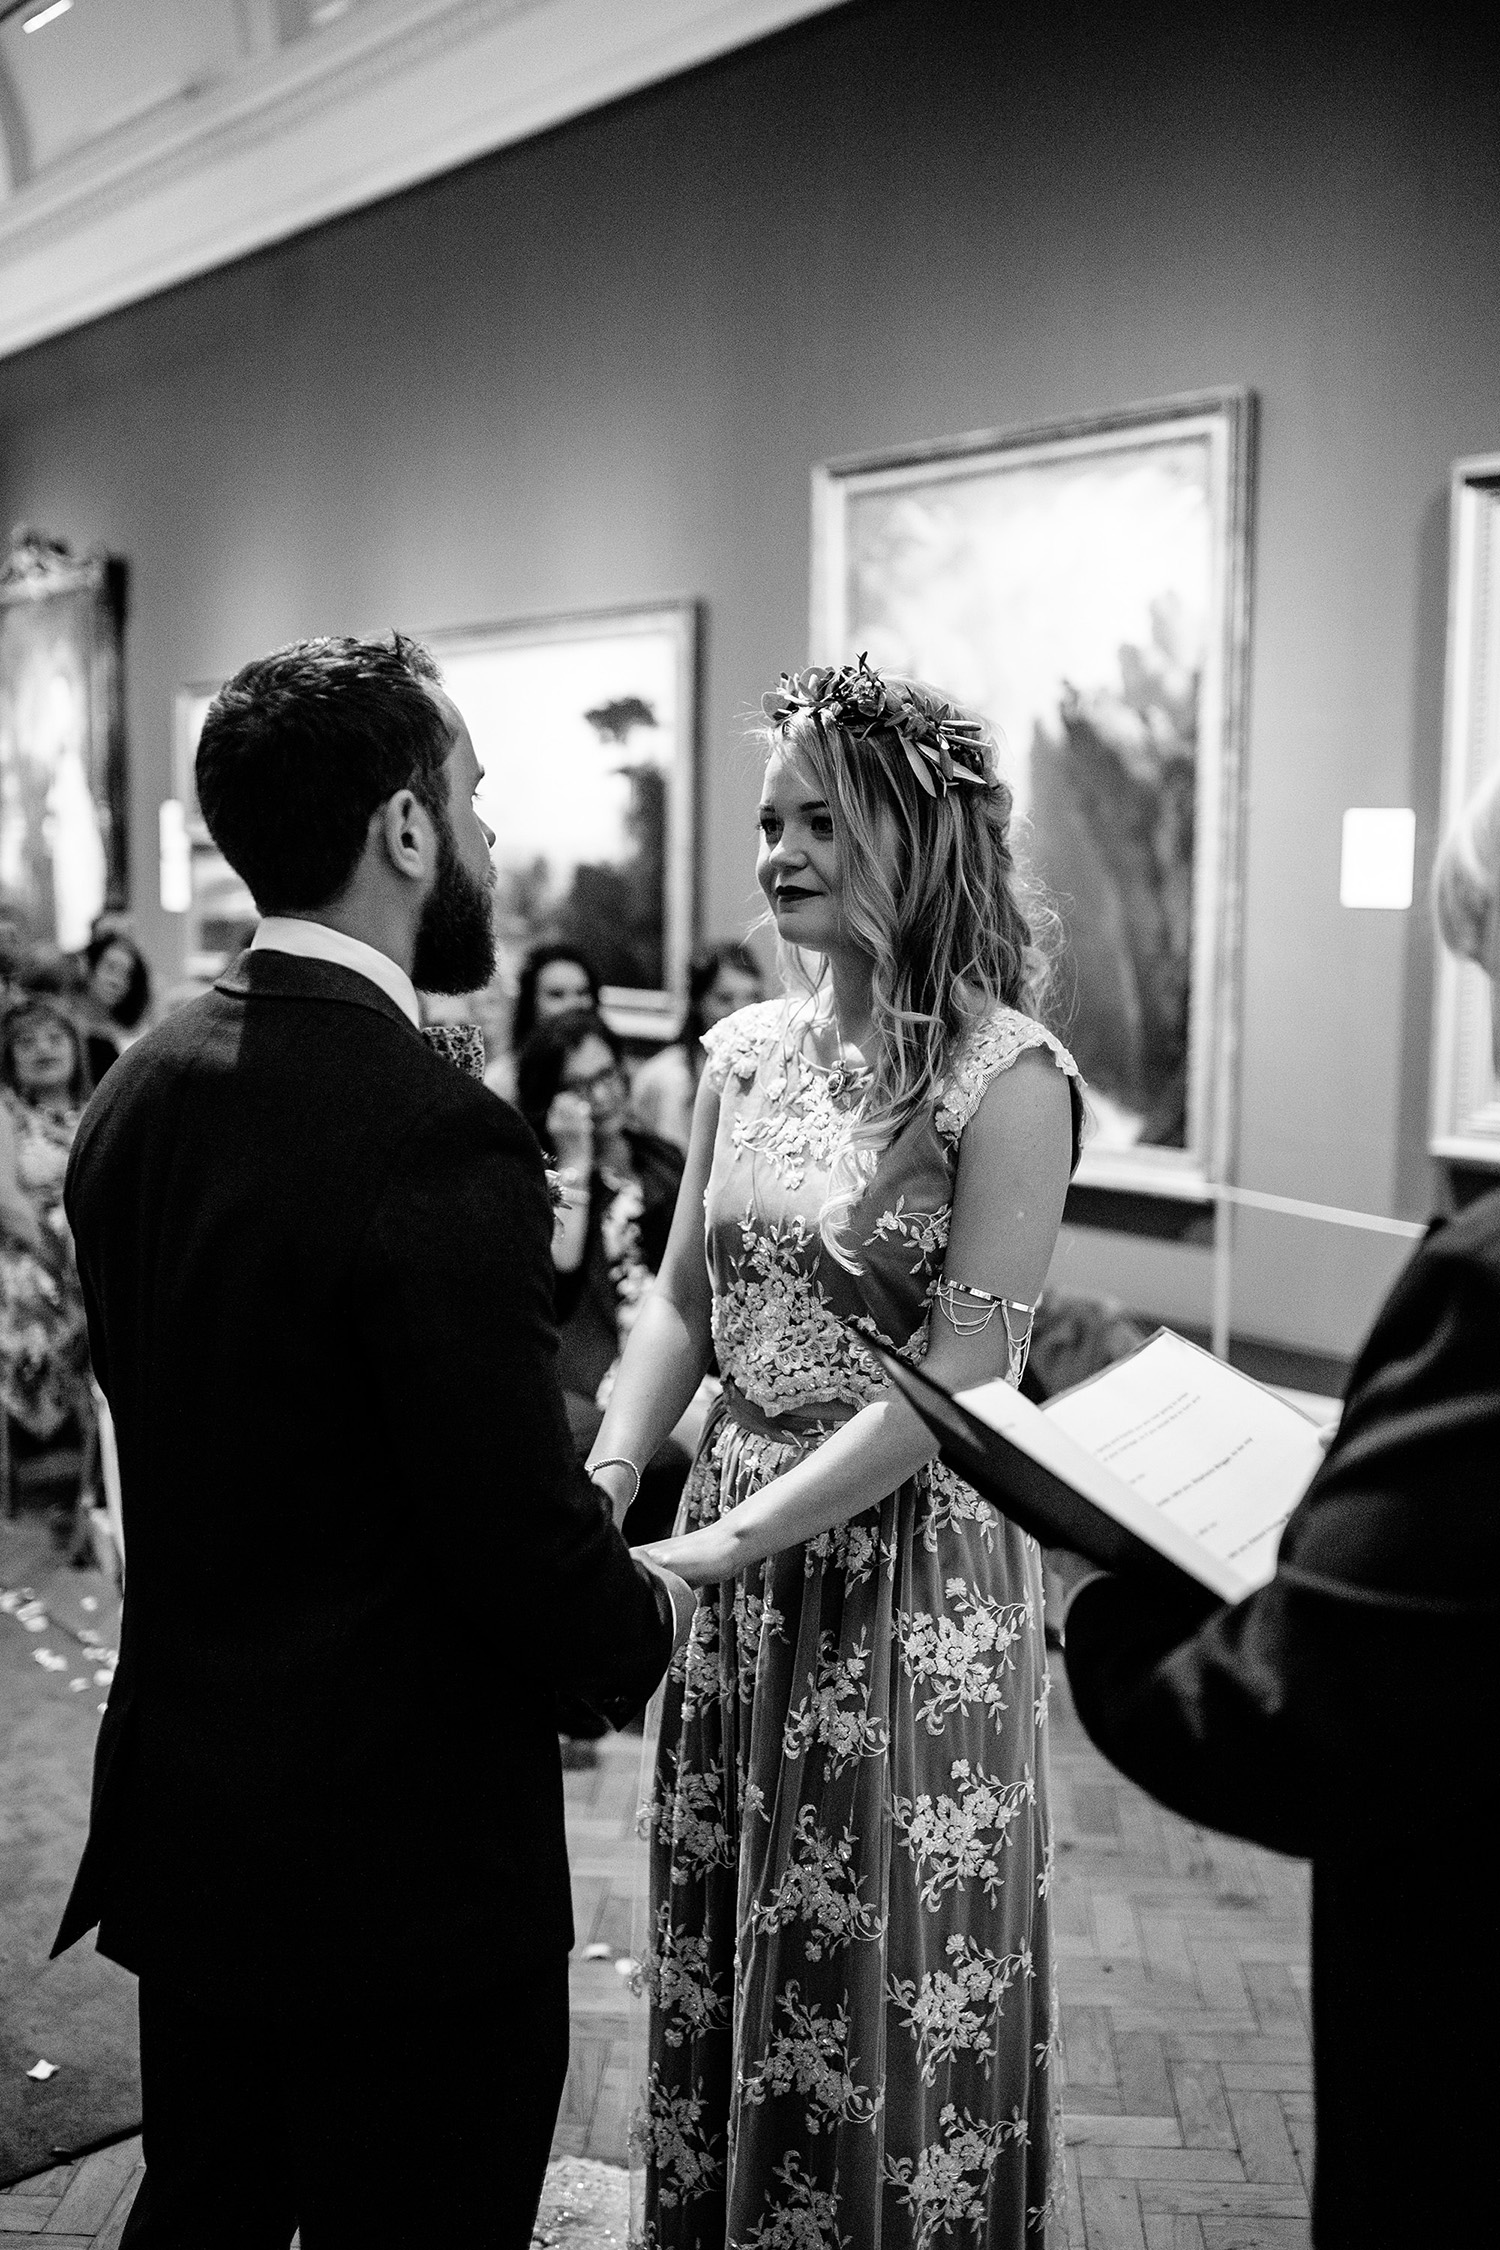 LAING ART GALLERY NEWCASTLE WEDDING PHOTOGRAPHY 73.JPG